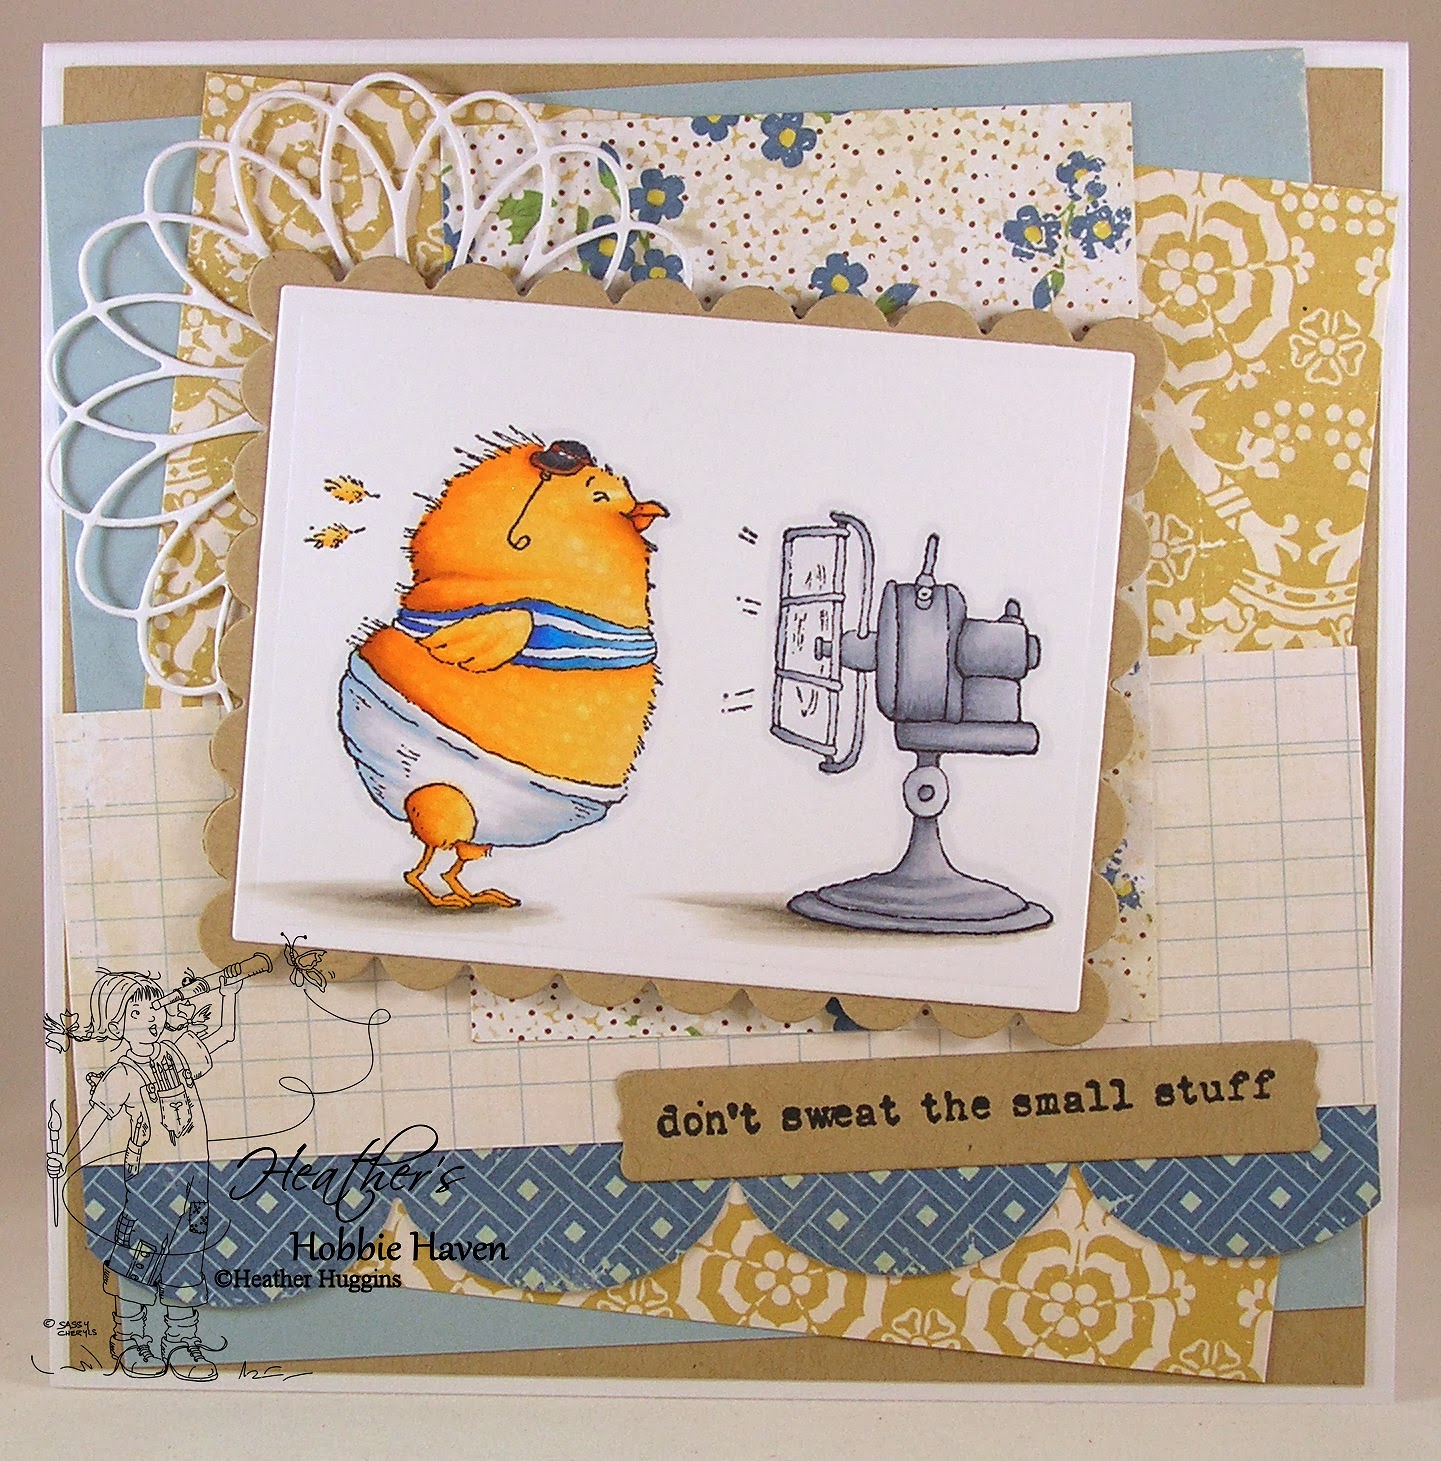 Heather's Hobbie Haven - Helga the Hot Chick Card Kit